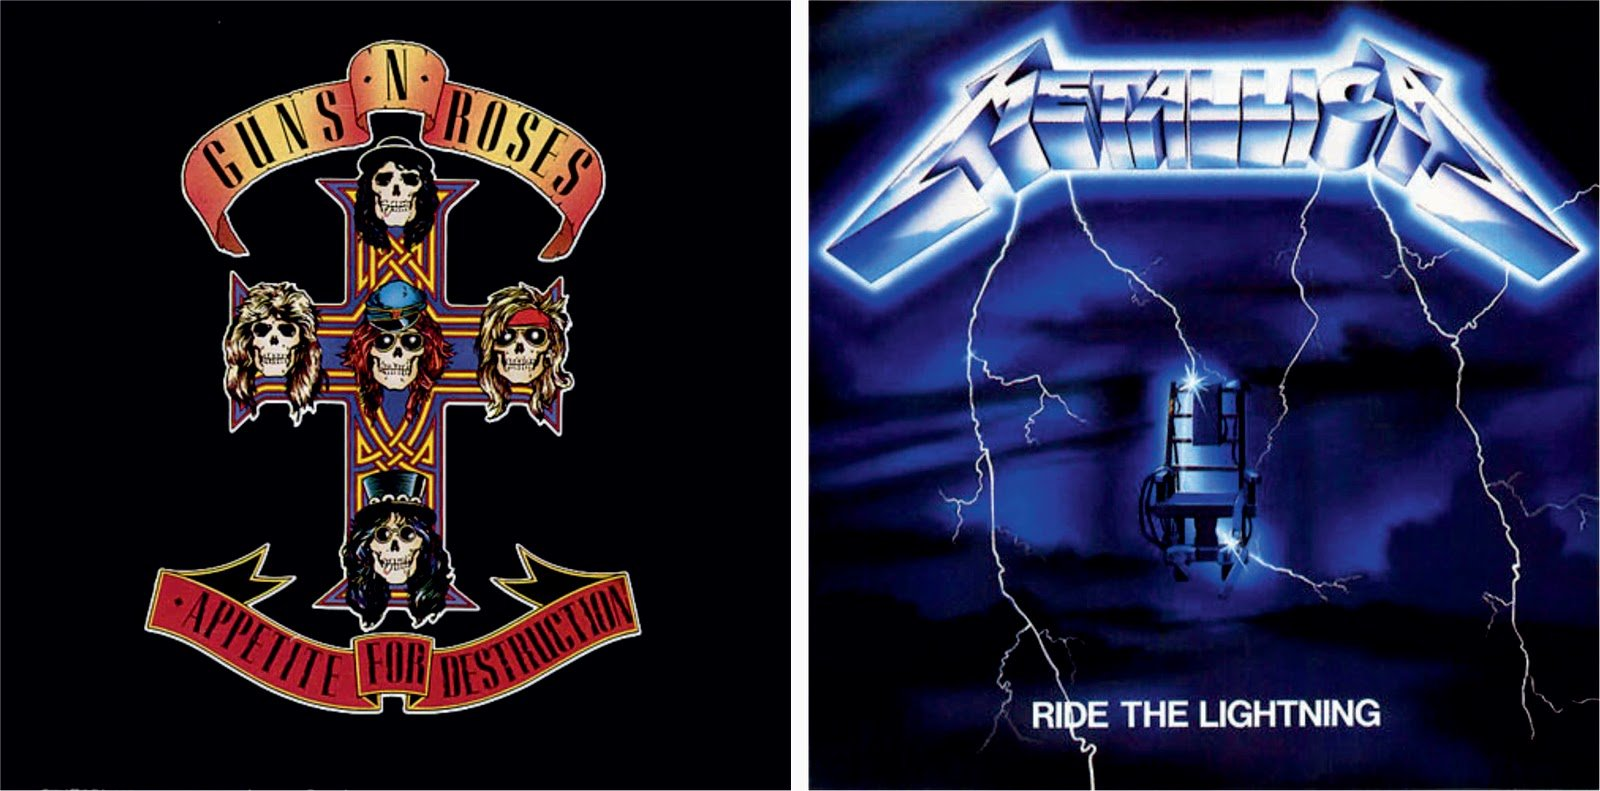 Metallica Ride the Lightning Wallpaper 1600x791